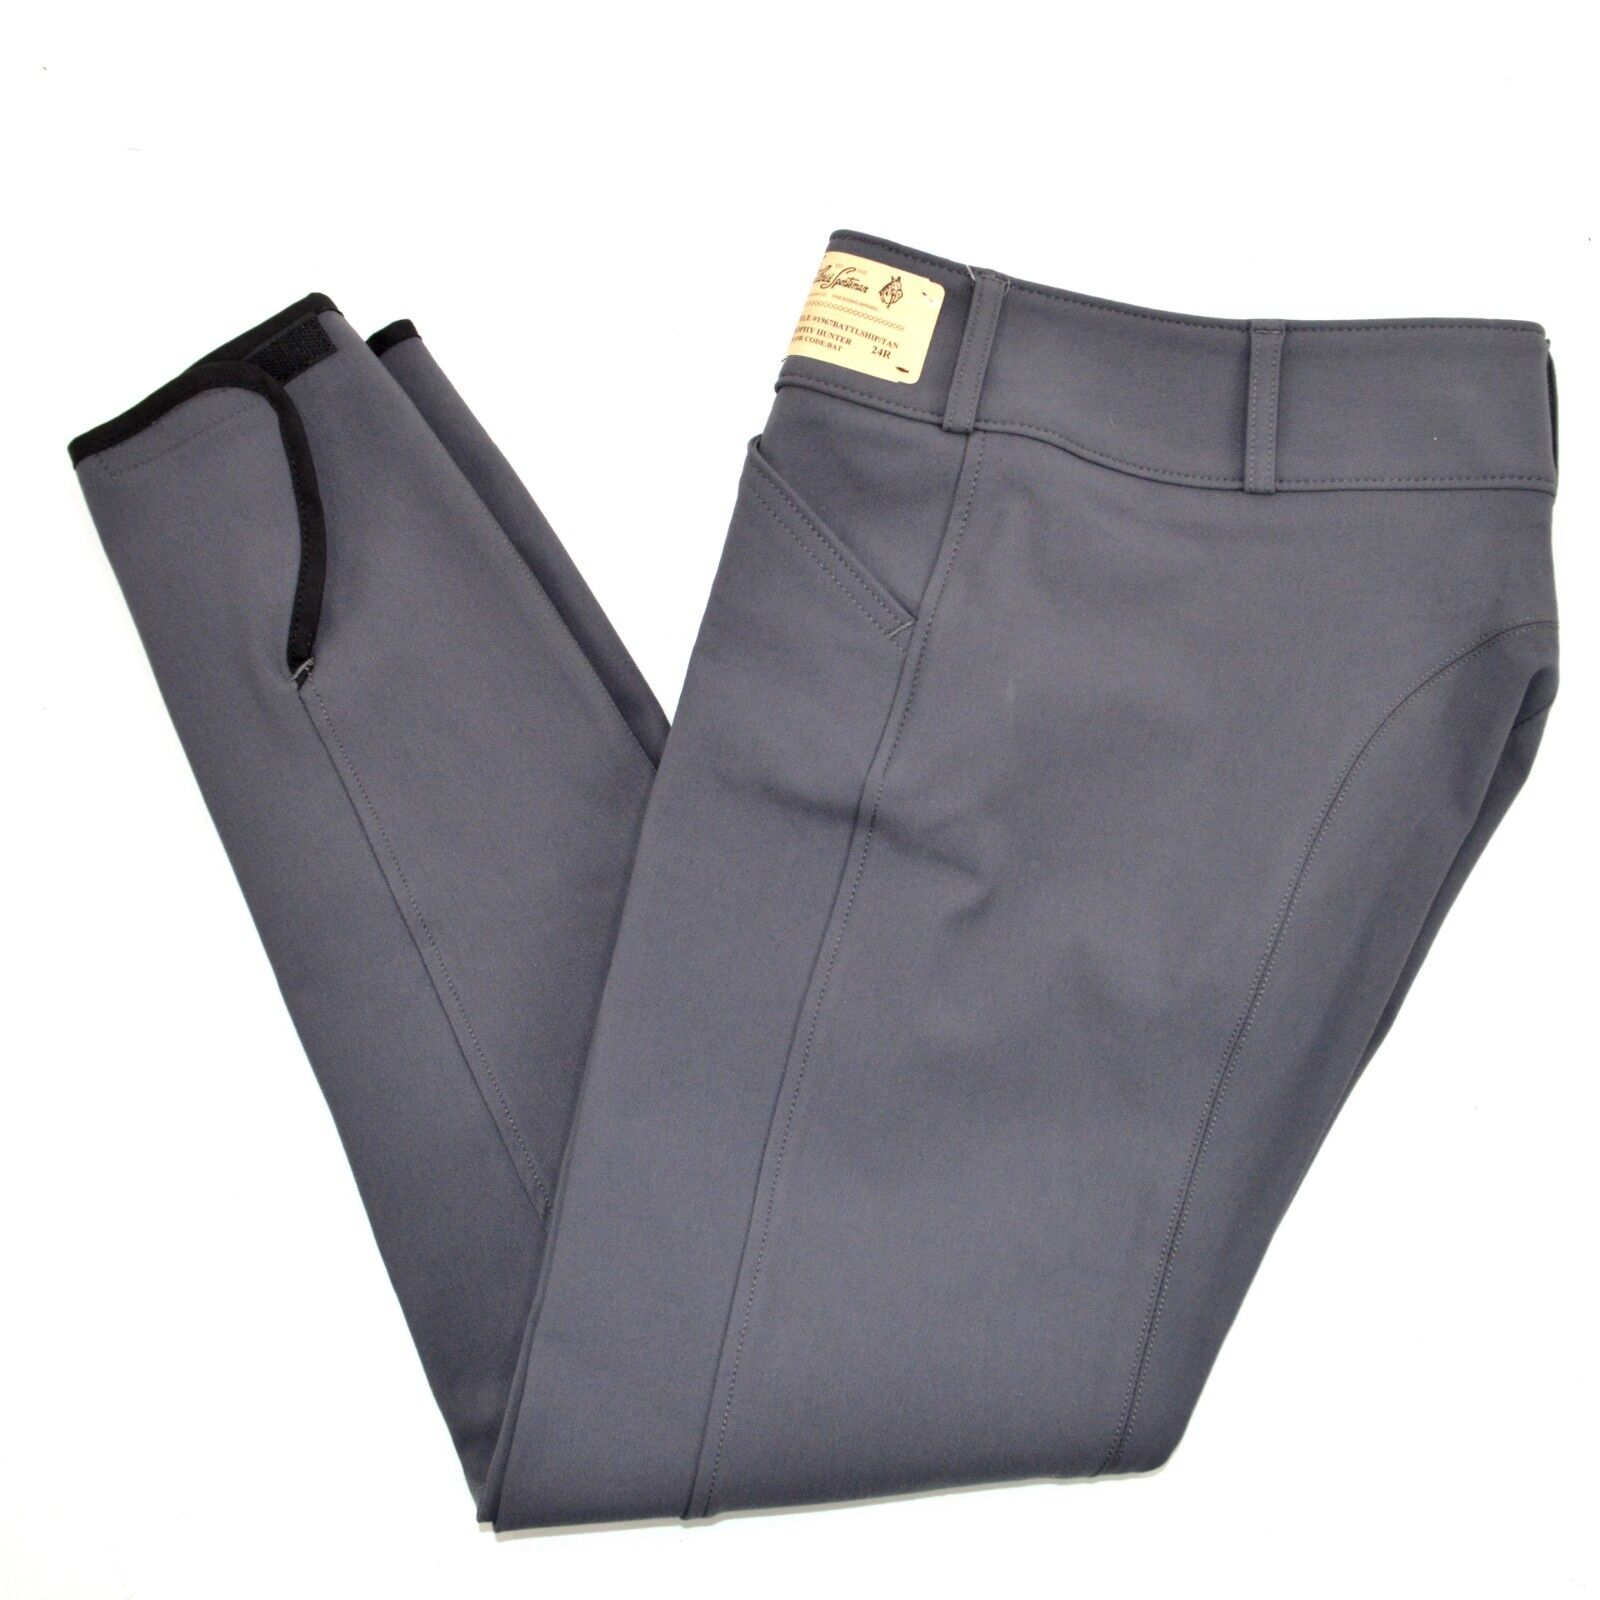 Tailored Sportsman Low  Rise Front Zip Trophy Hunter Breeches - 1967 - Battleship  clients first reputation first